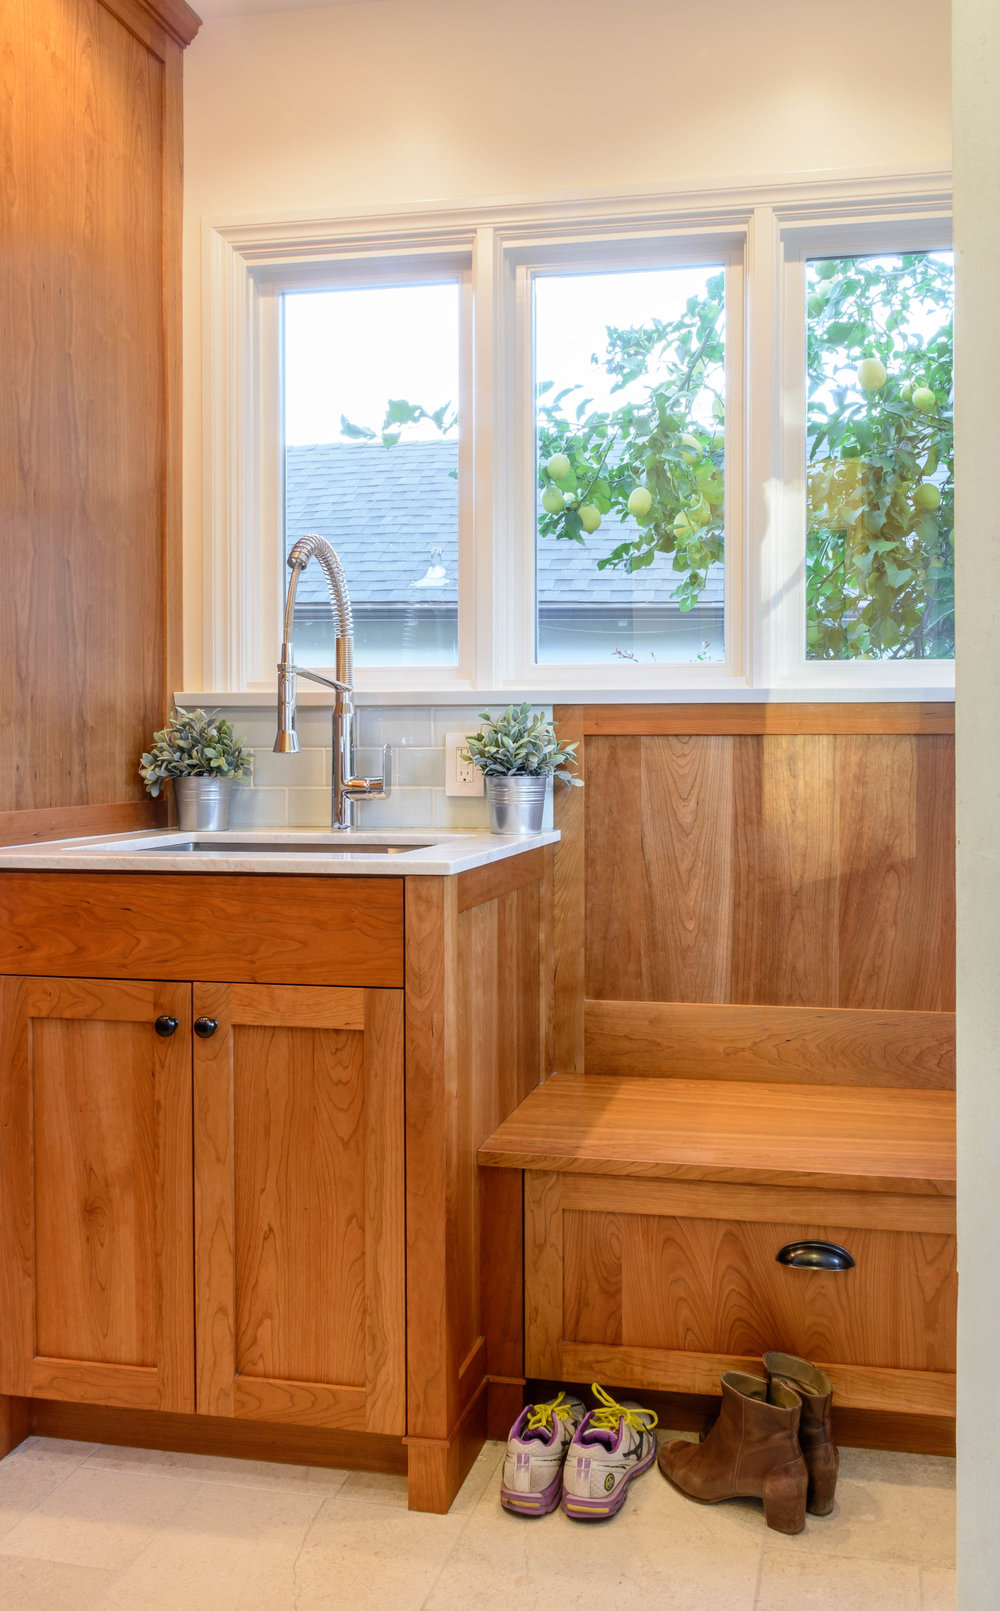 Tudor-Kitchen-Remodel-Mud-Room-Laundry-Sink-Bench.jpg